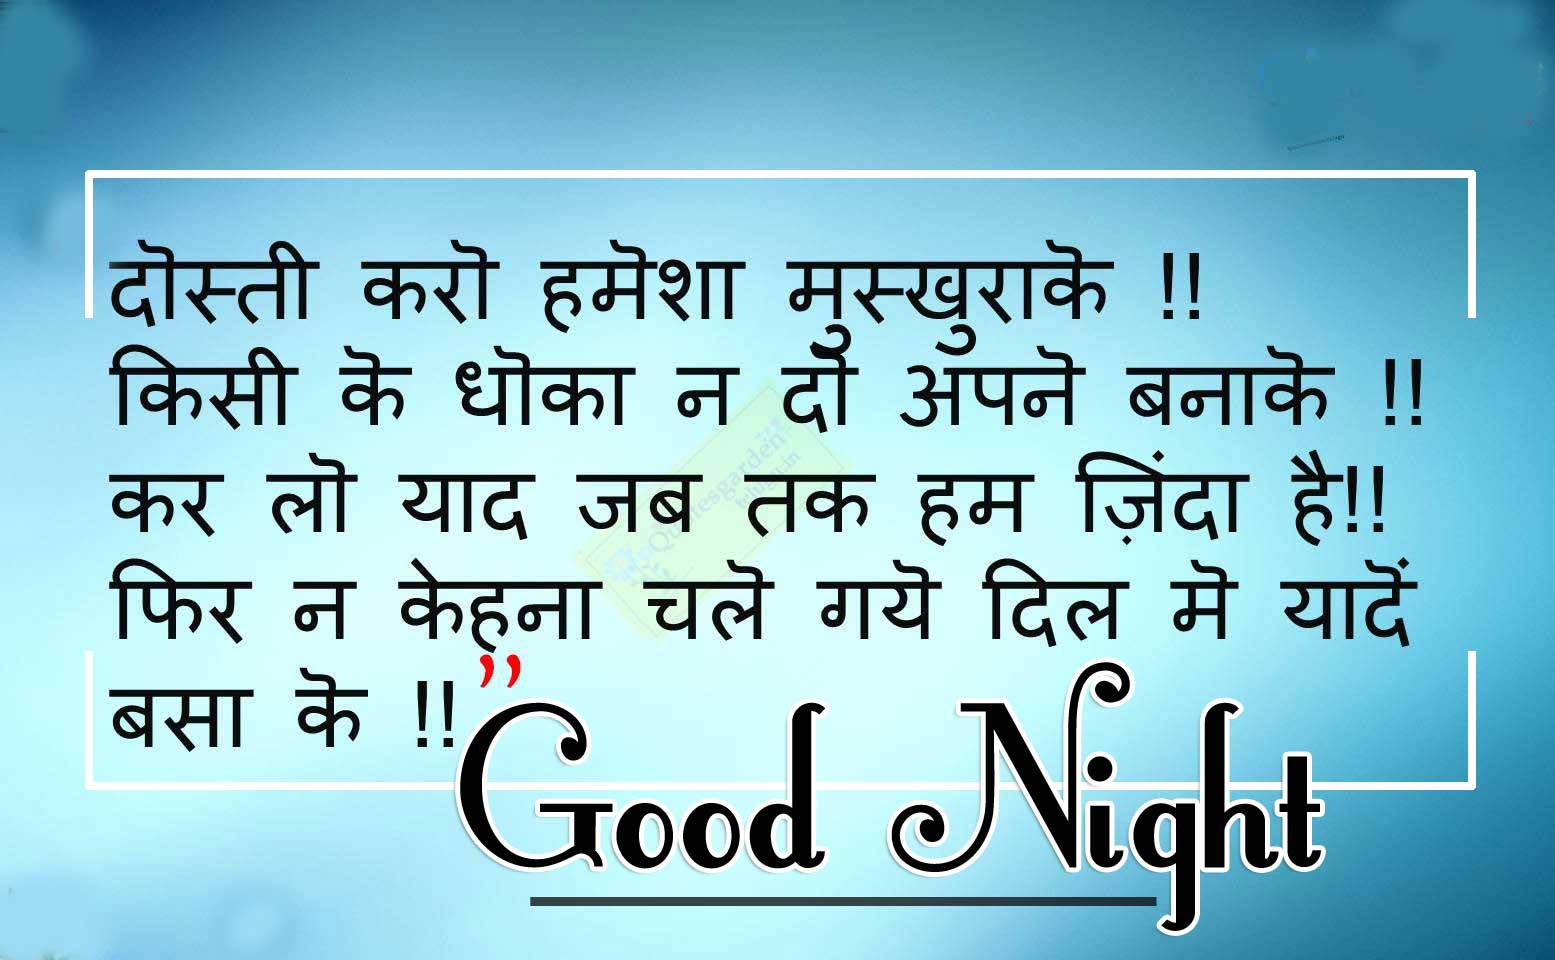 Good Night Images With Hindi Shayari 41